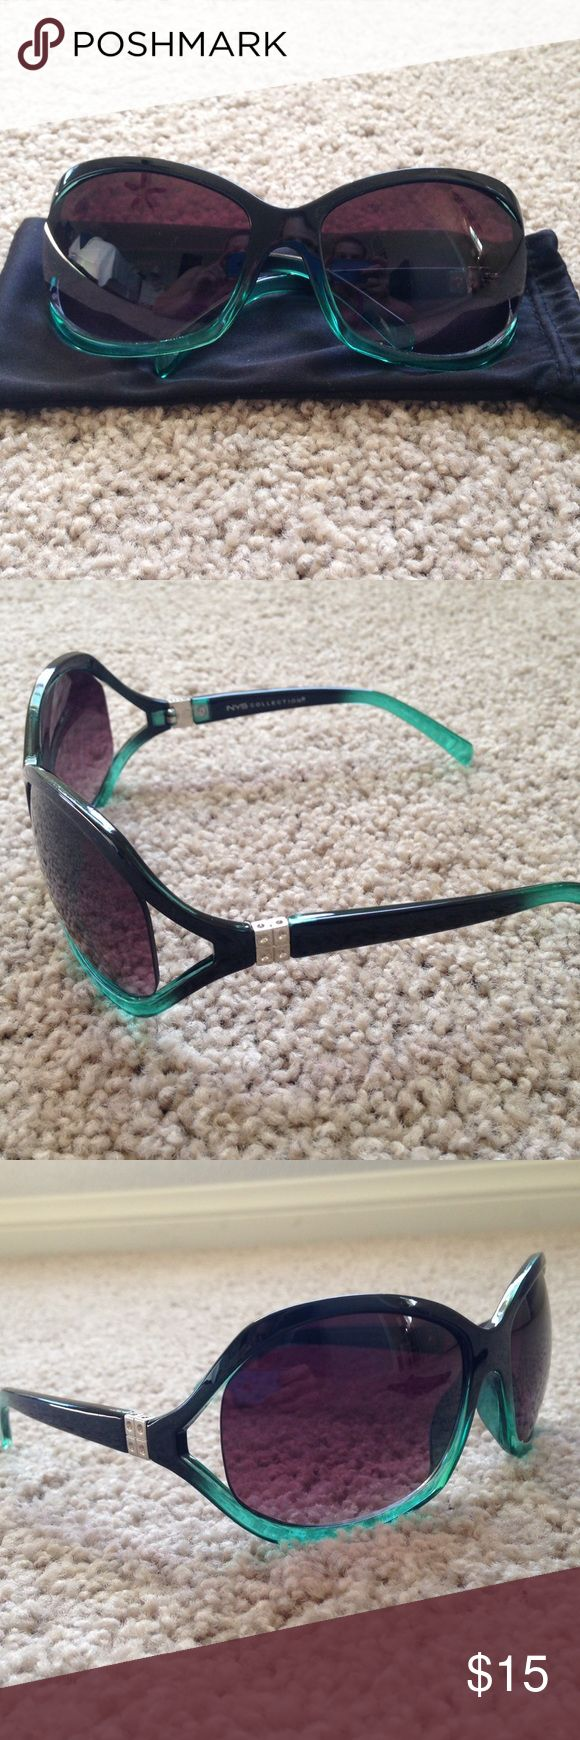 NWOT NYS Sunglasses NWOT!!! Never worn!!! NYS sunglasses. Black with real color at the bottom of rims and the back of the bow. Comes with pouch for protection!!! Accessories Sunglasses